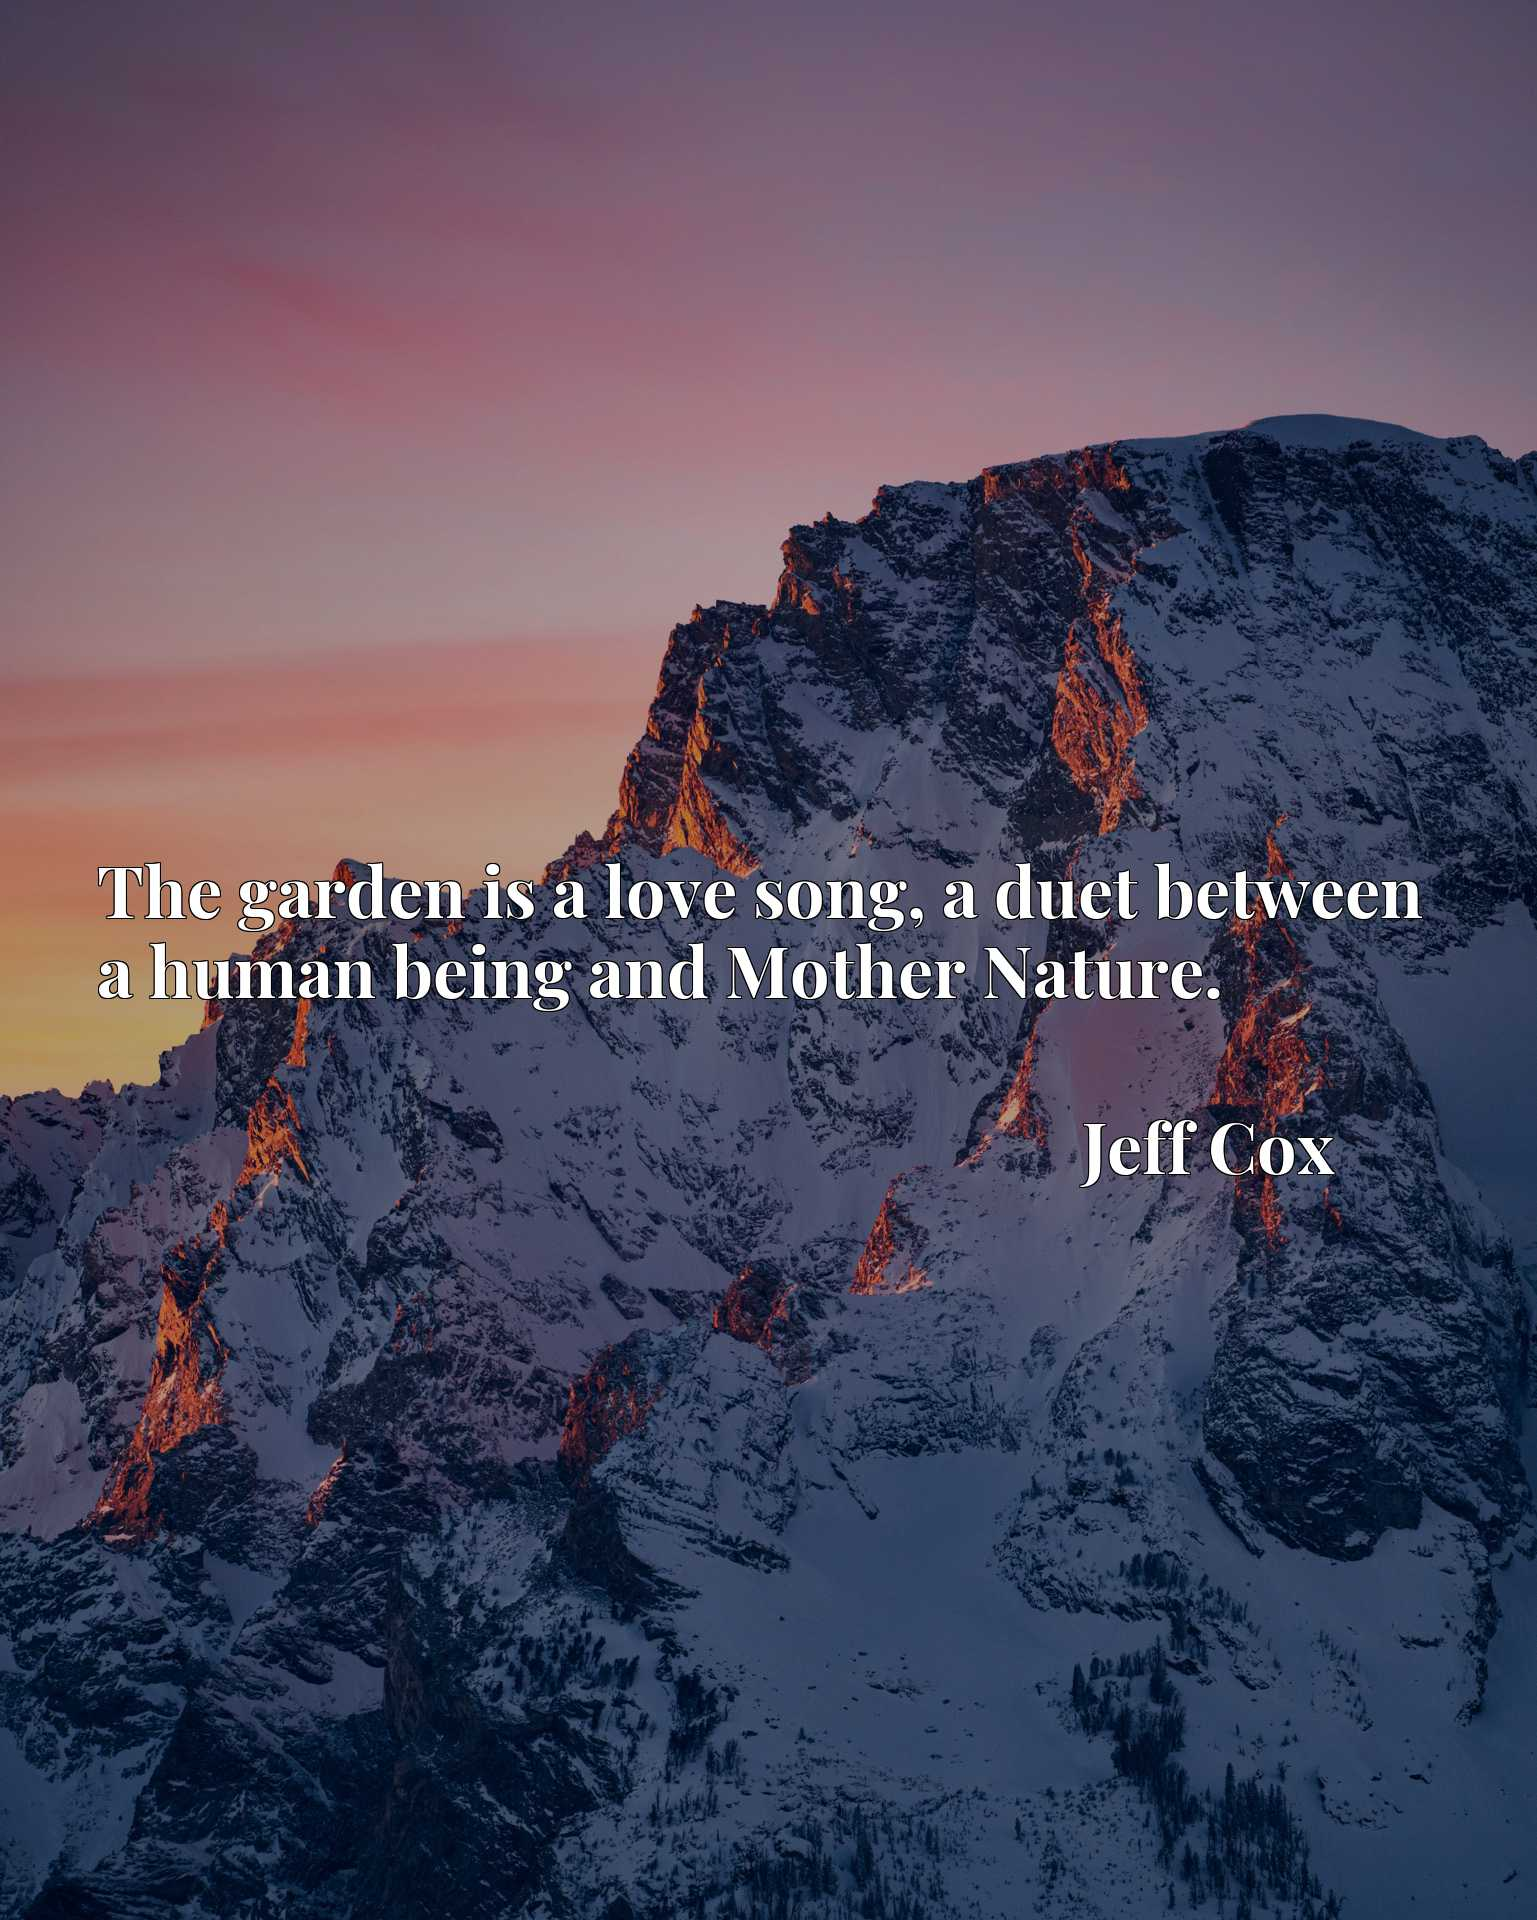 The garden is a love song, a duet between a human being and Mother Nature.